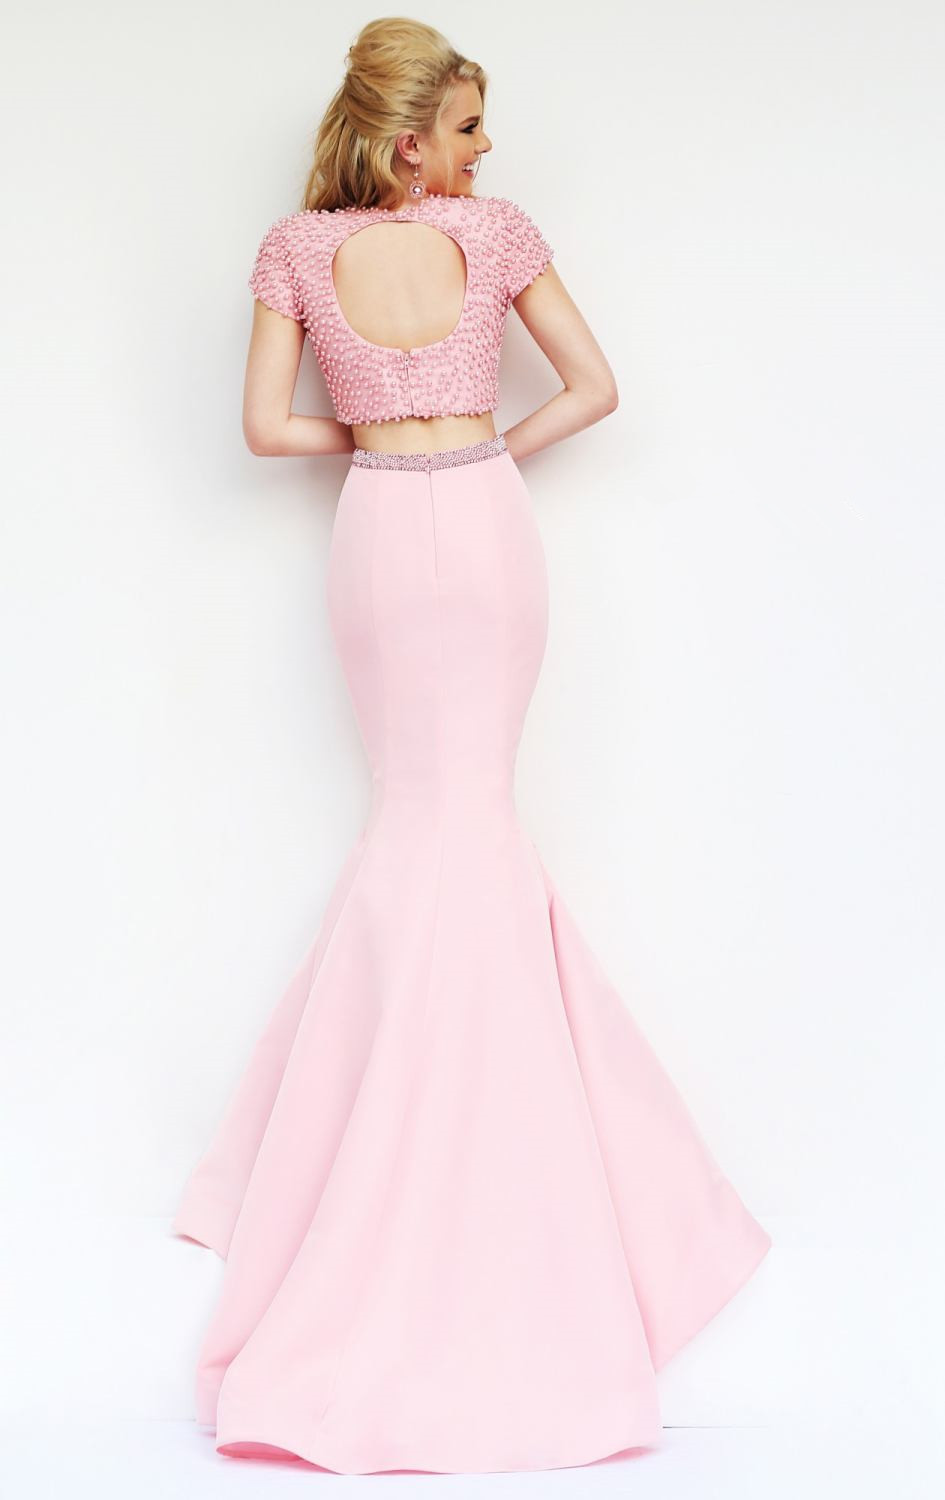 Aliexpress.com : buy new!!! evening dresses 2015 two pieces set dresses beaded bodice pink party dresses for girls from reliable dress exotic suppliers on suzhou babyonlinedress co.,ltd